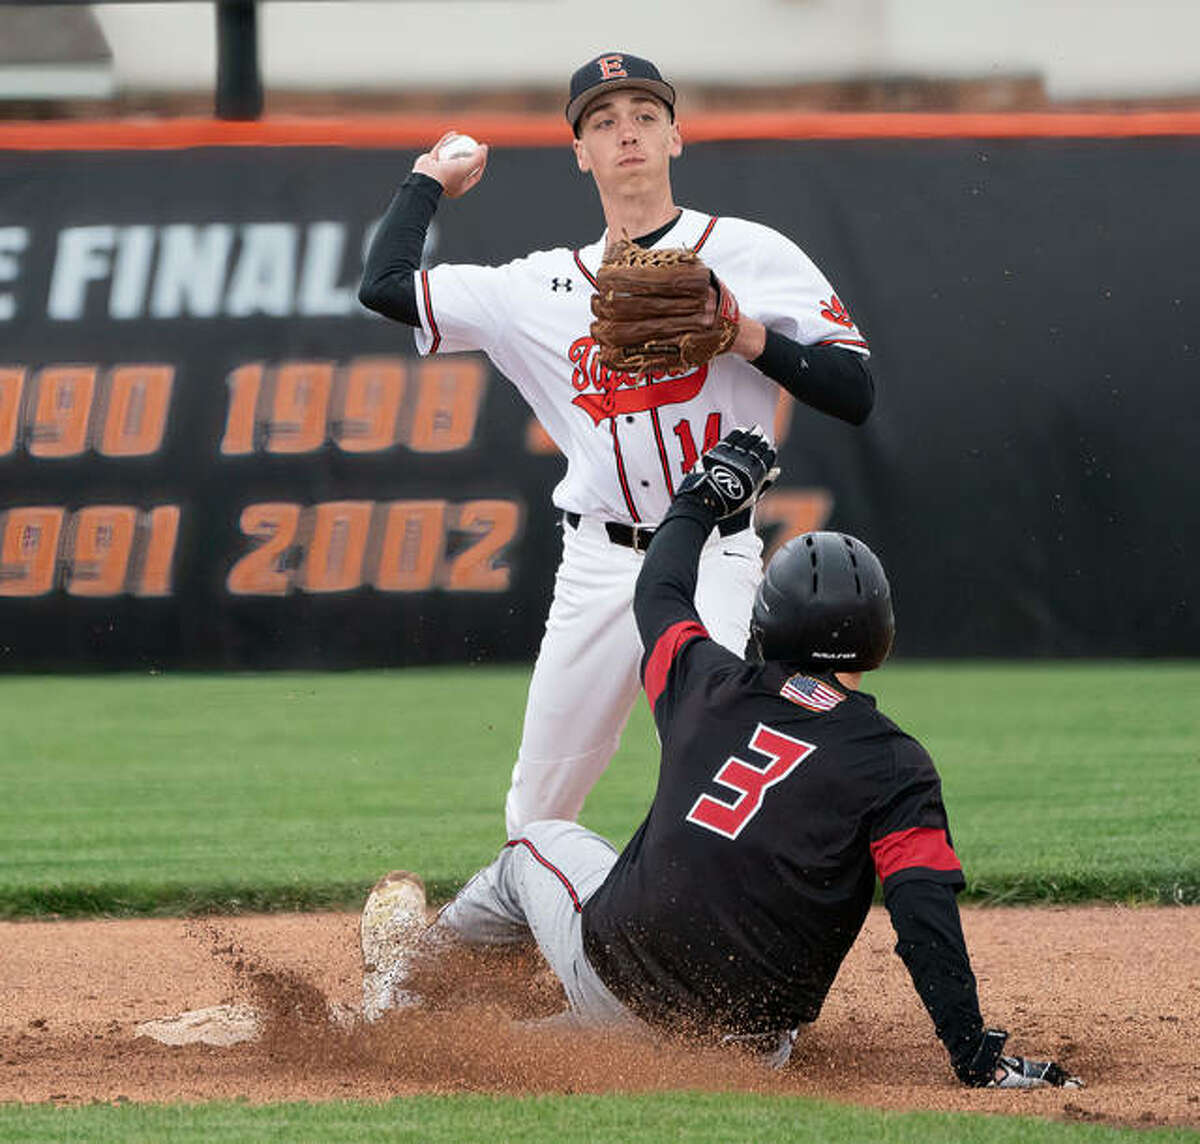 Edwardsville's Kyle Modrusic fires a throw to first base to try and complete a double play against Triad on Friday.